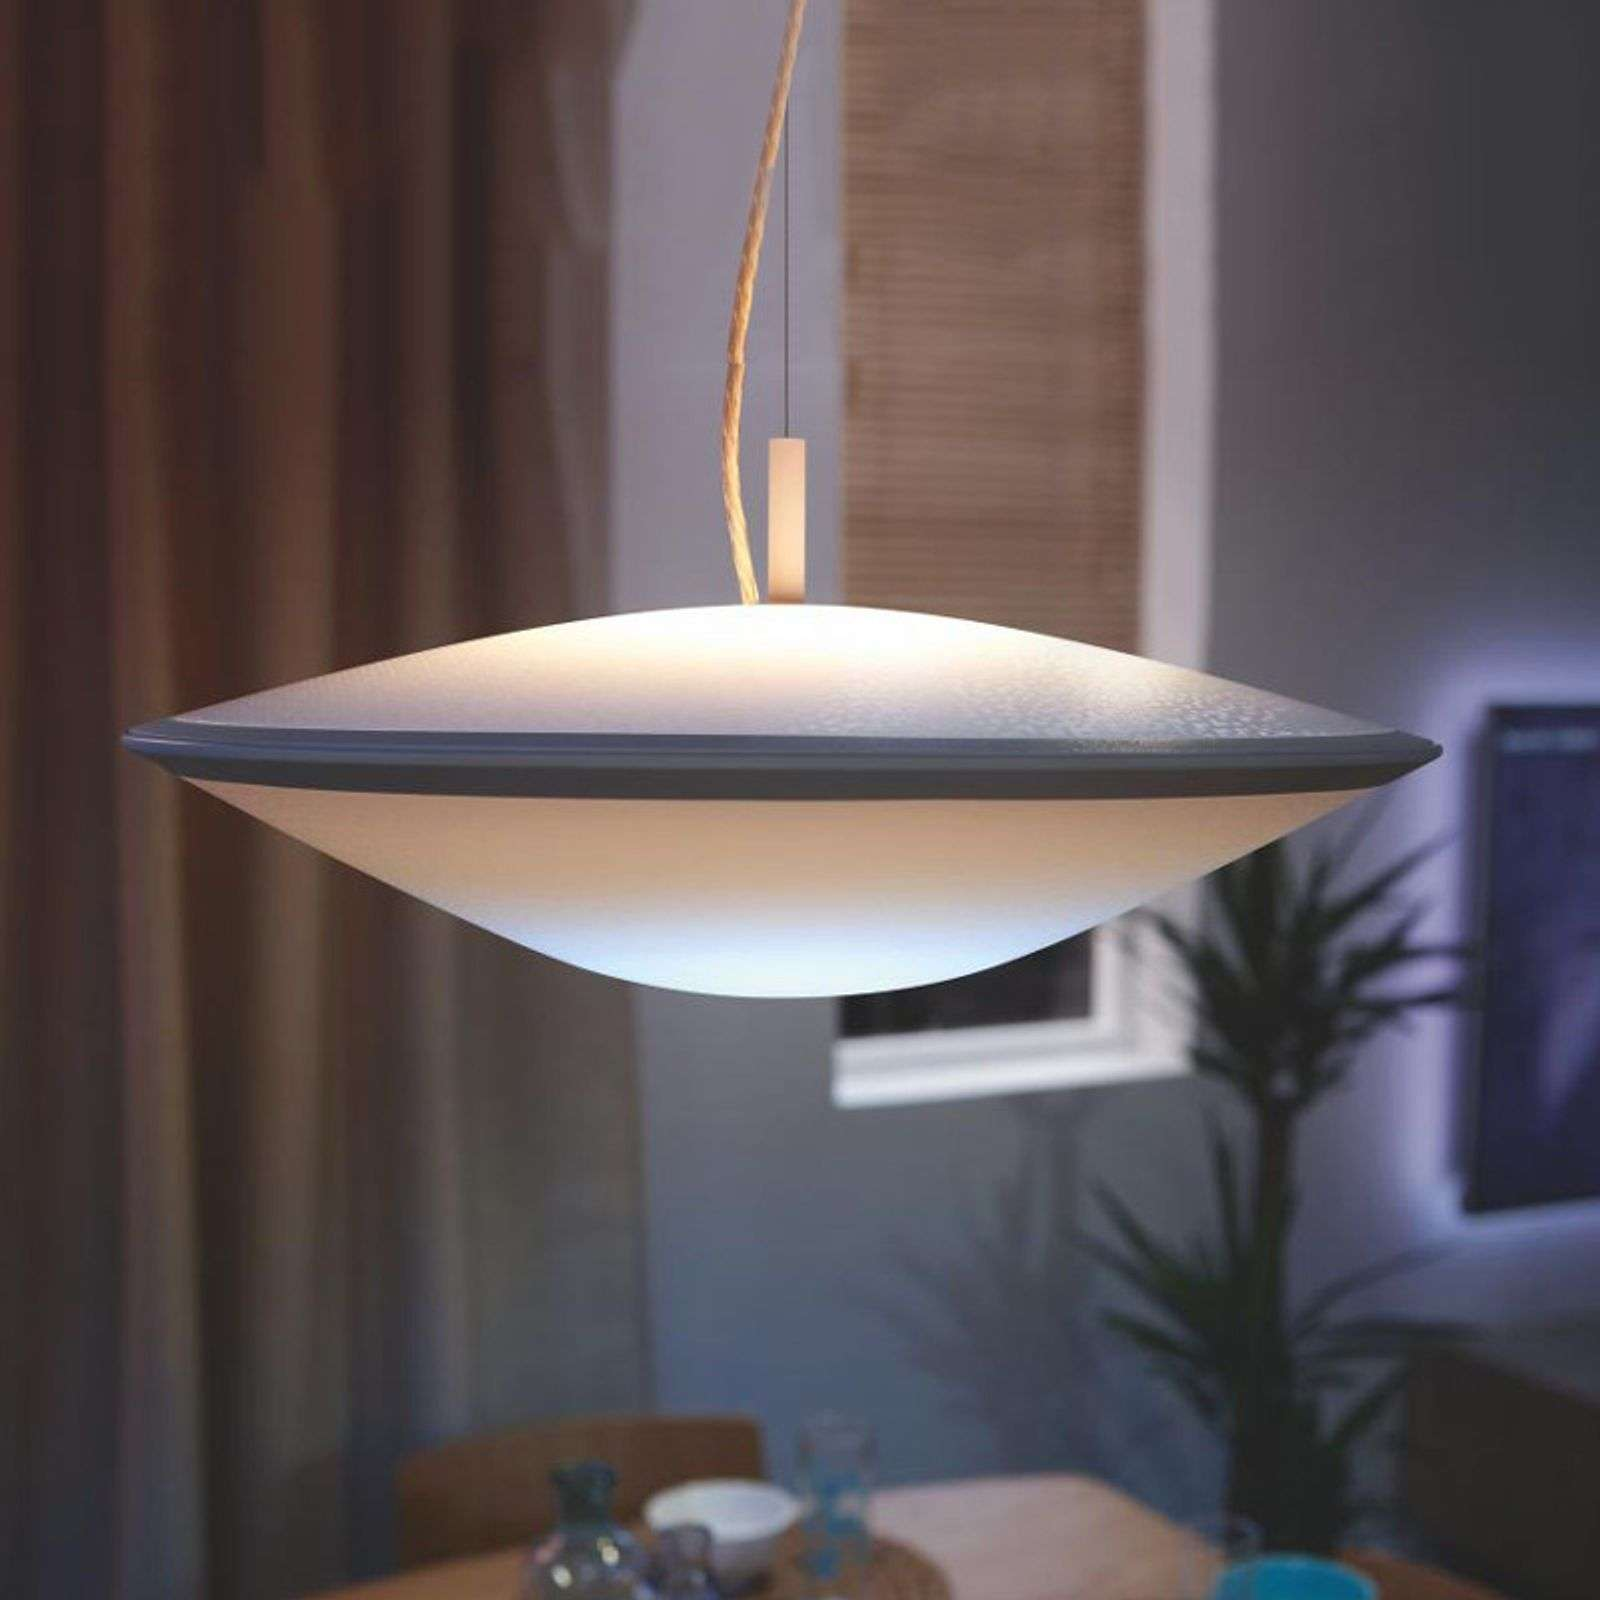 Suspension Philips Hue Phoenix